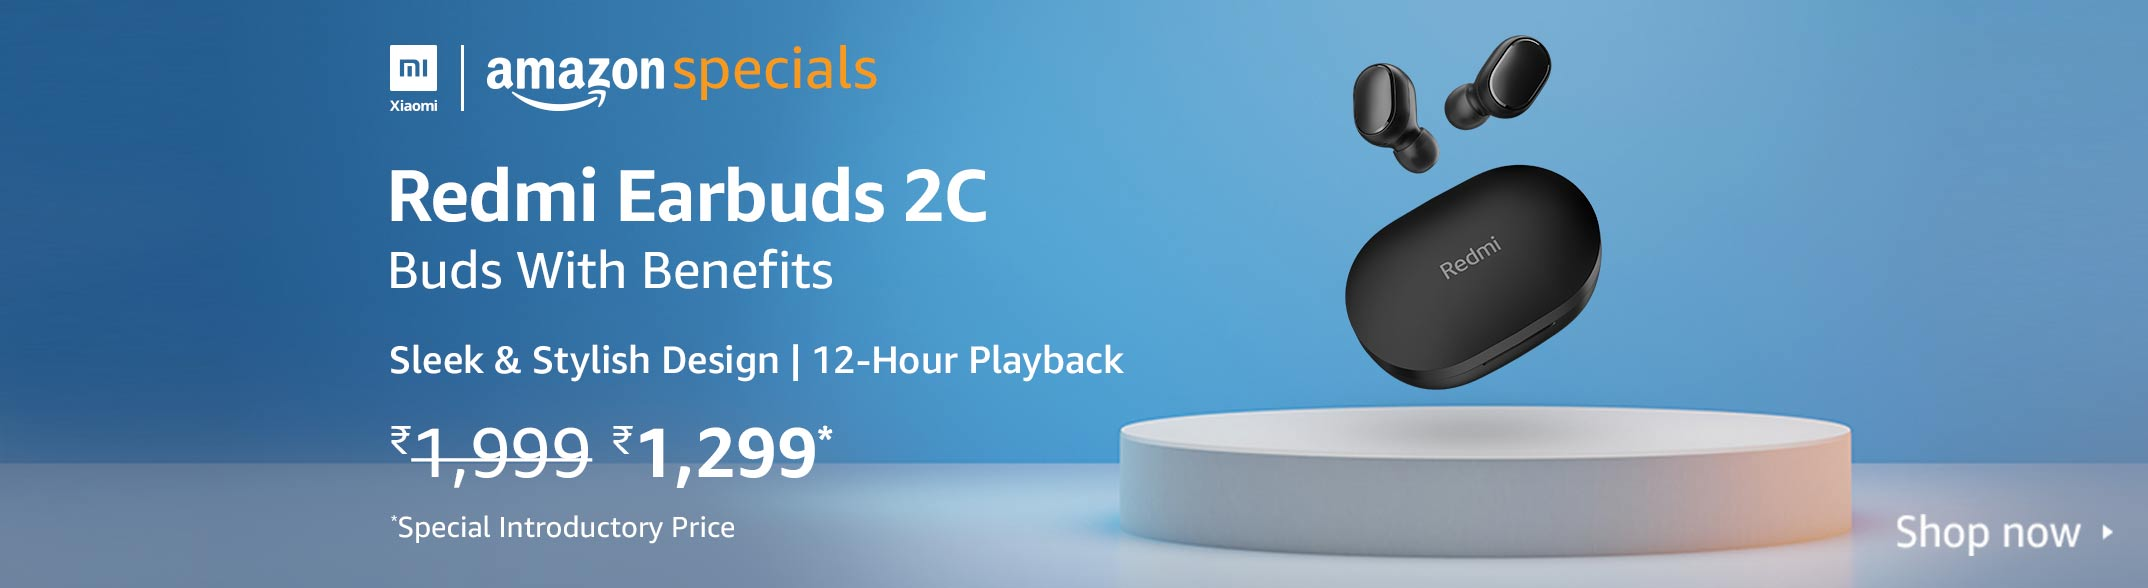 Amazon India Coupon for Redmi Earbuds 2C